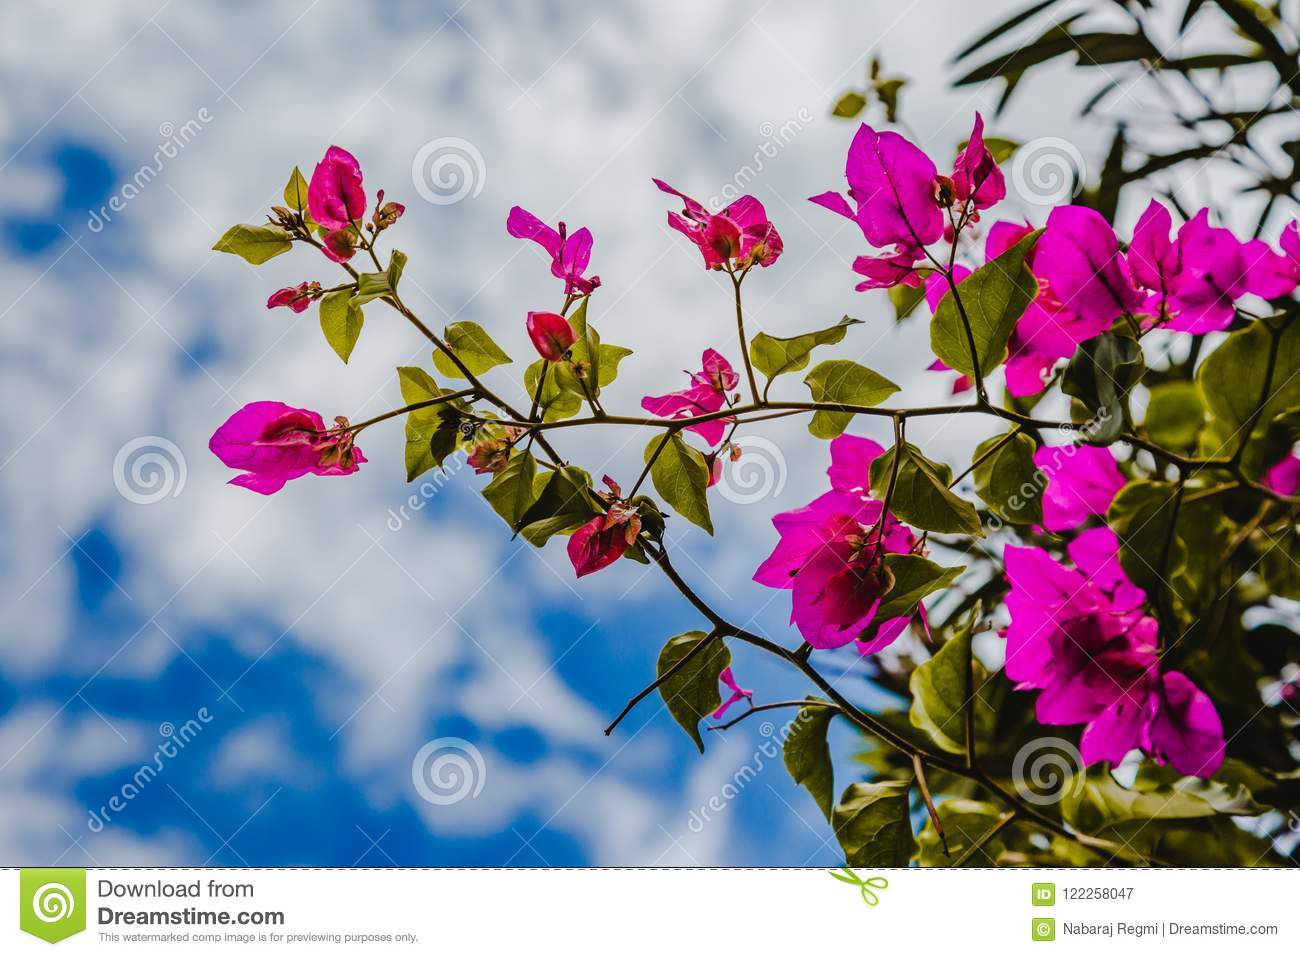 Abstract Natural Nature Pink Flowers Background Spring And Summe